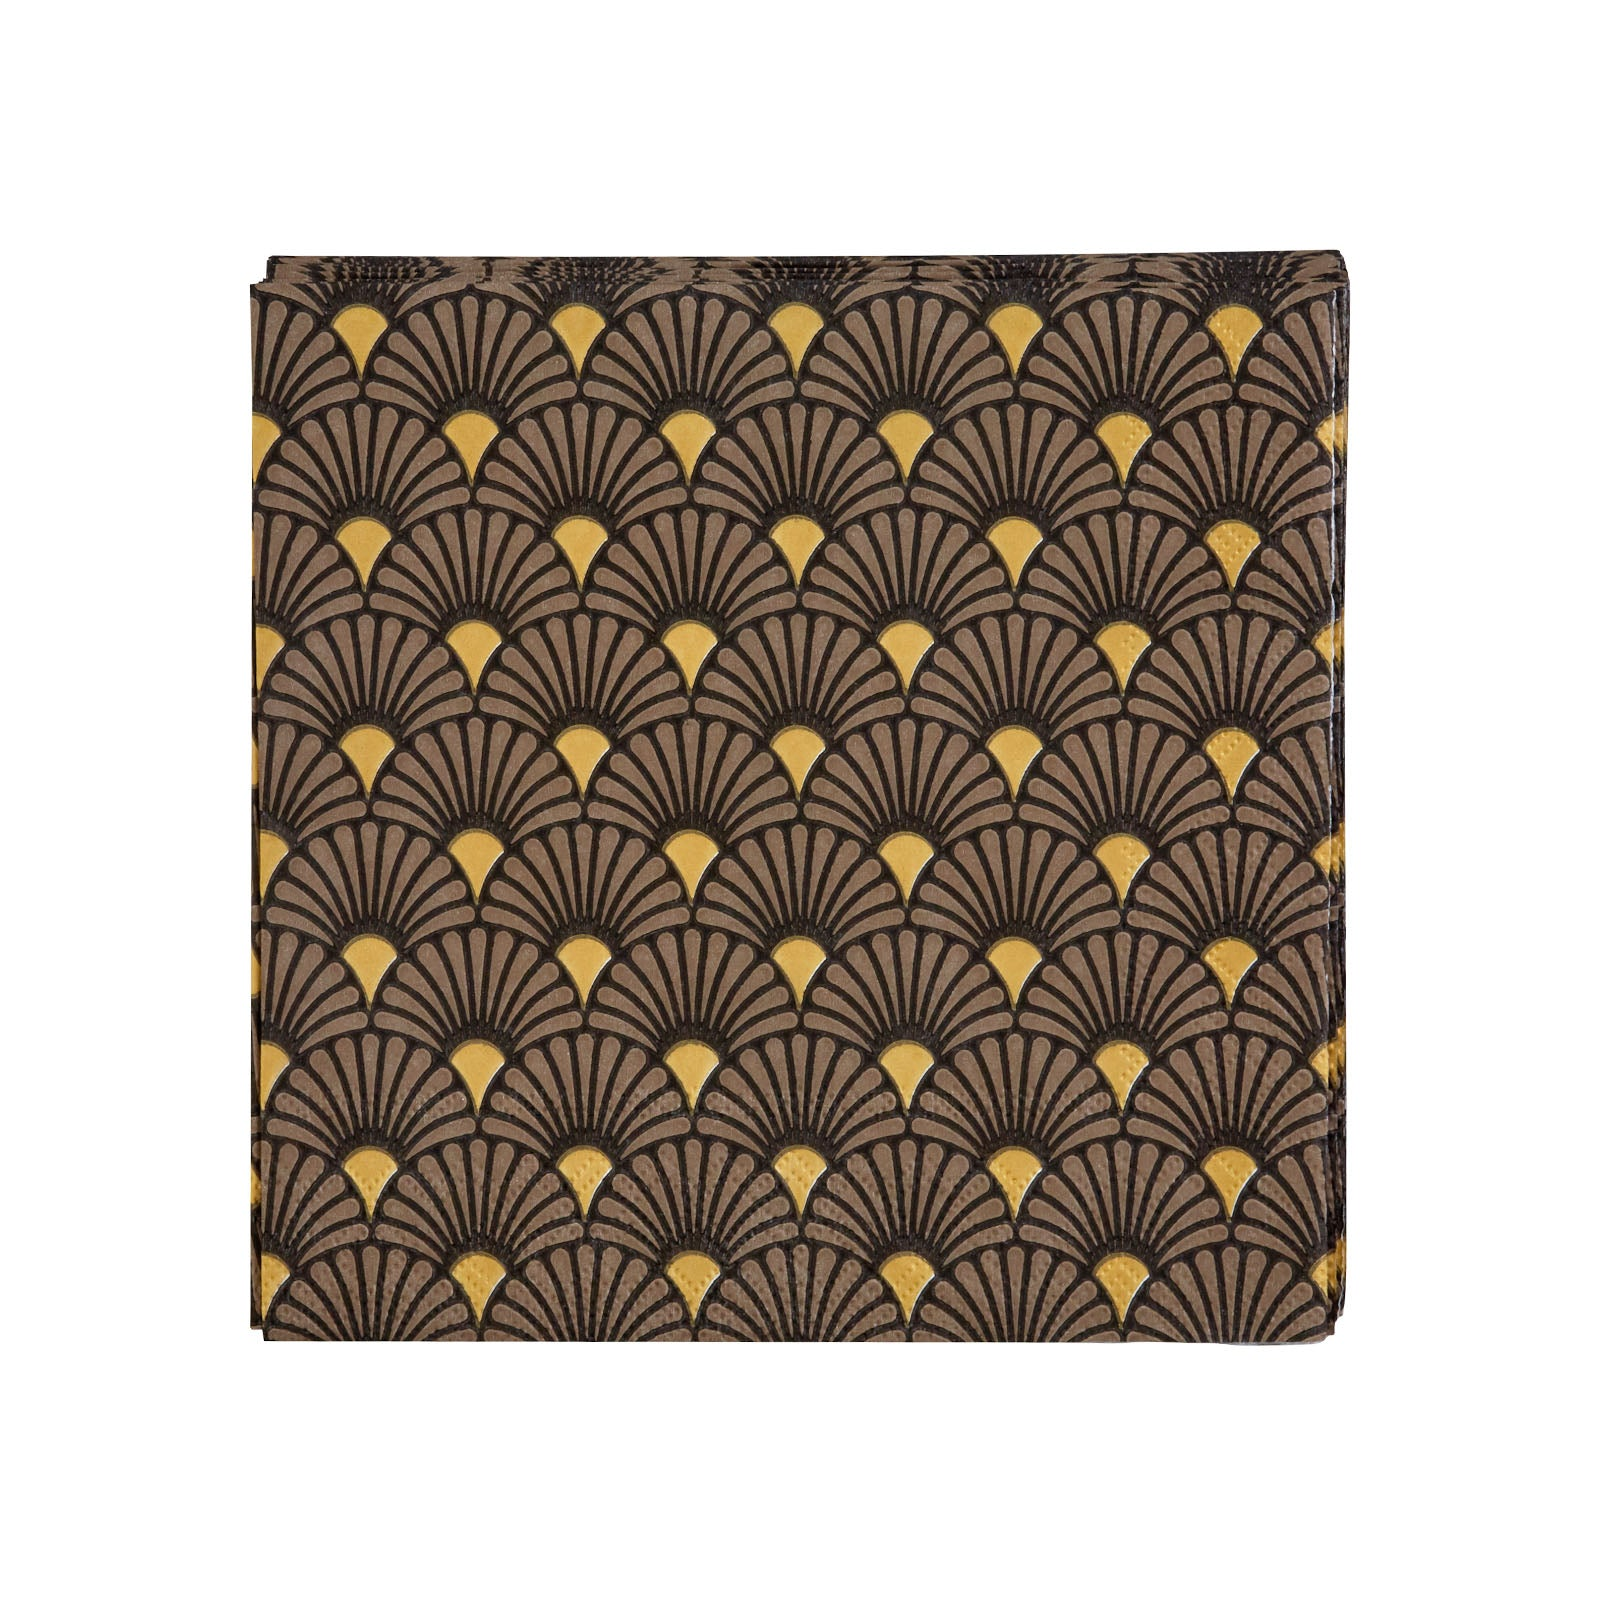 Karaca Art Deco Black / gold Napkin 153.19.01.1232